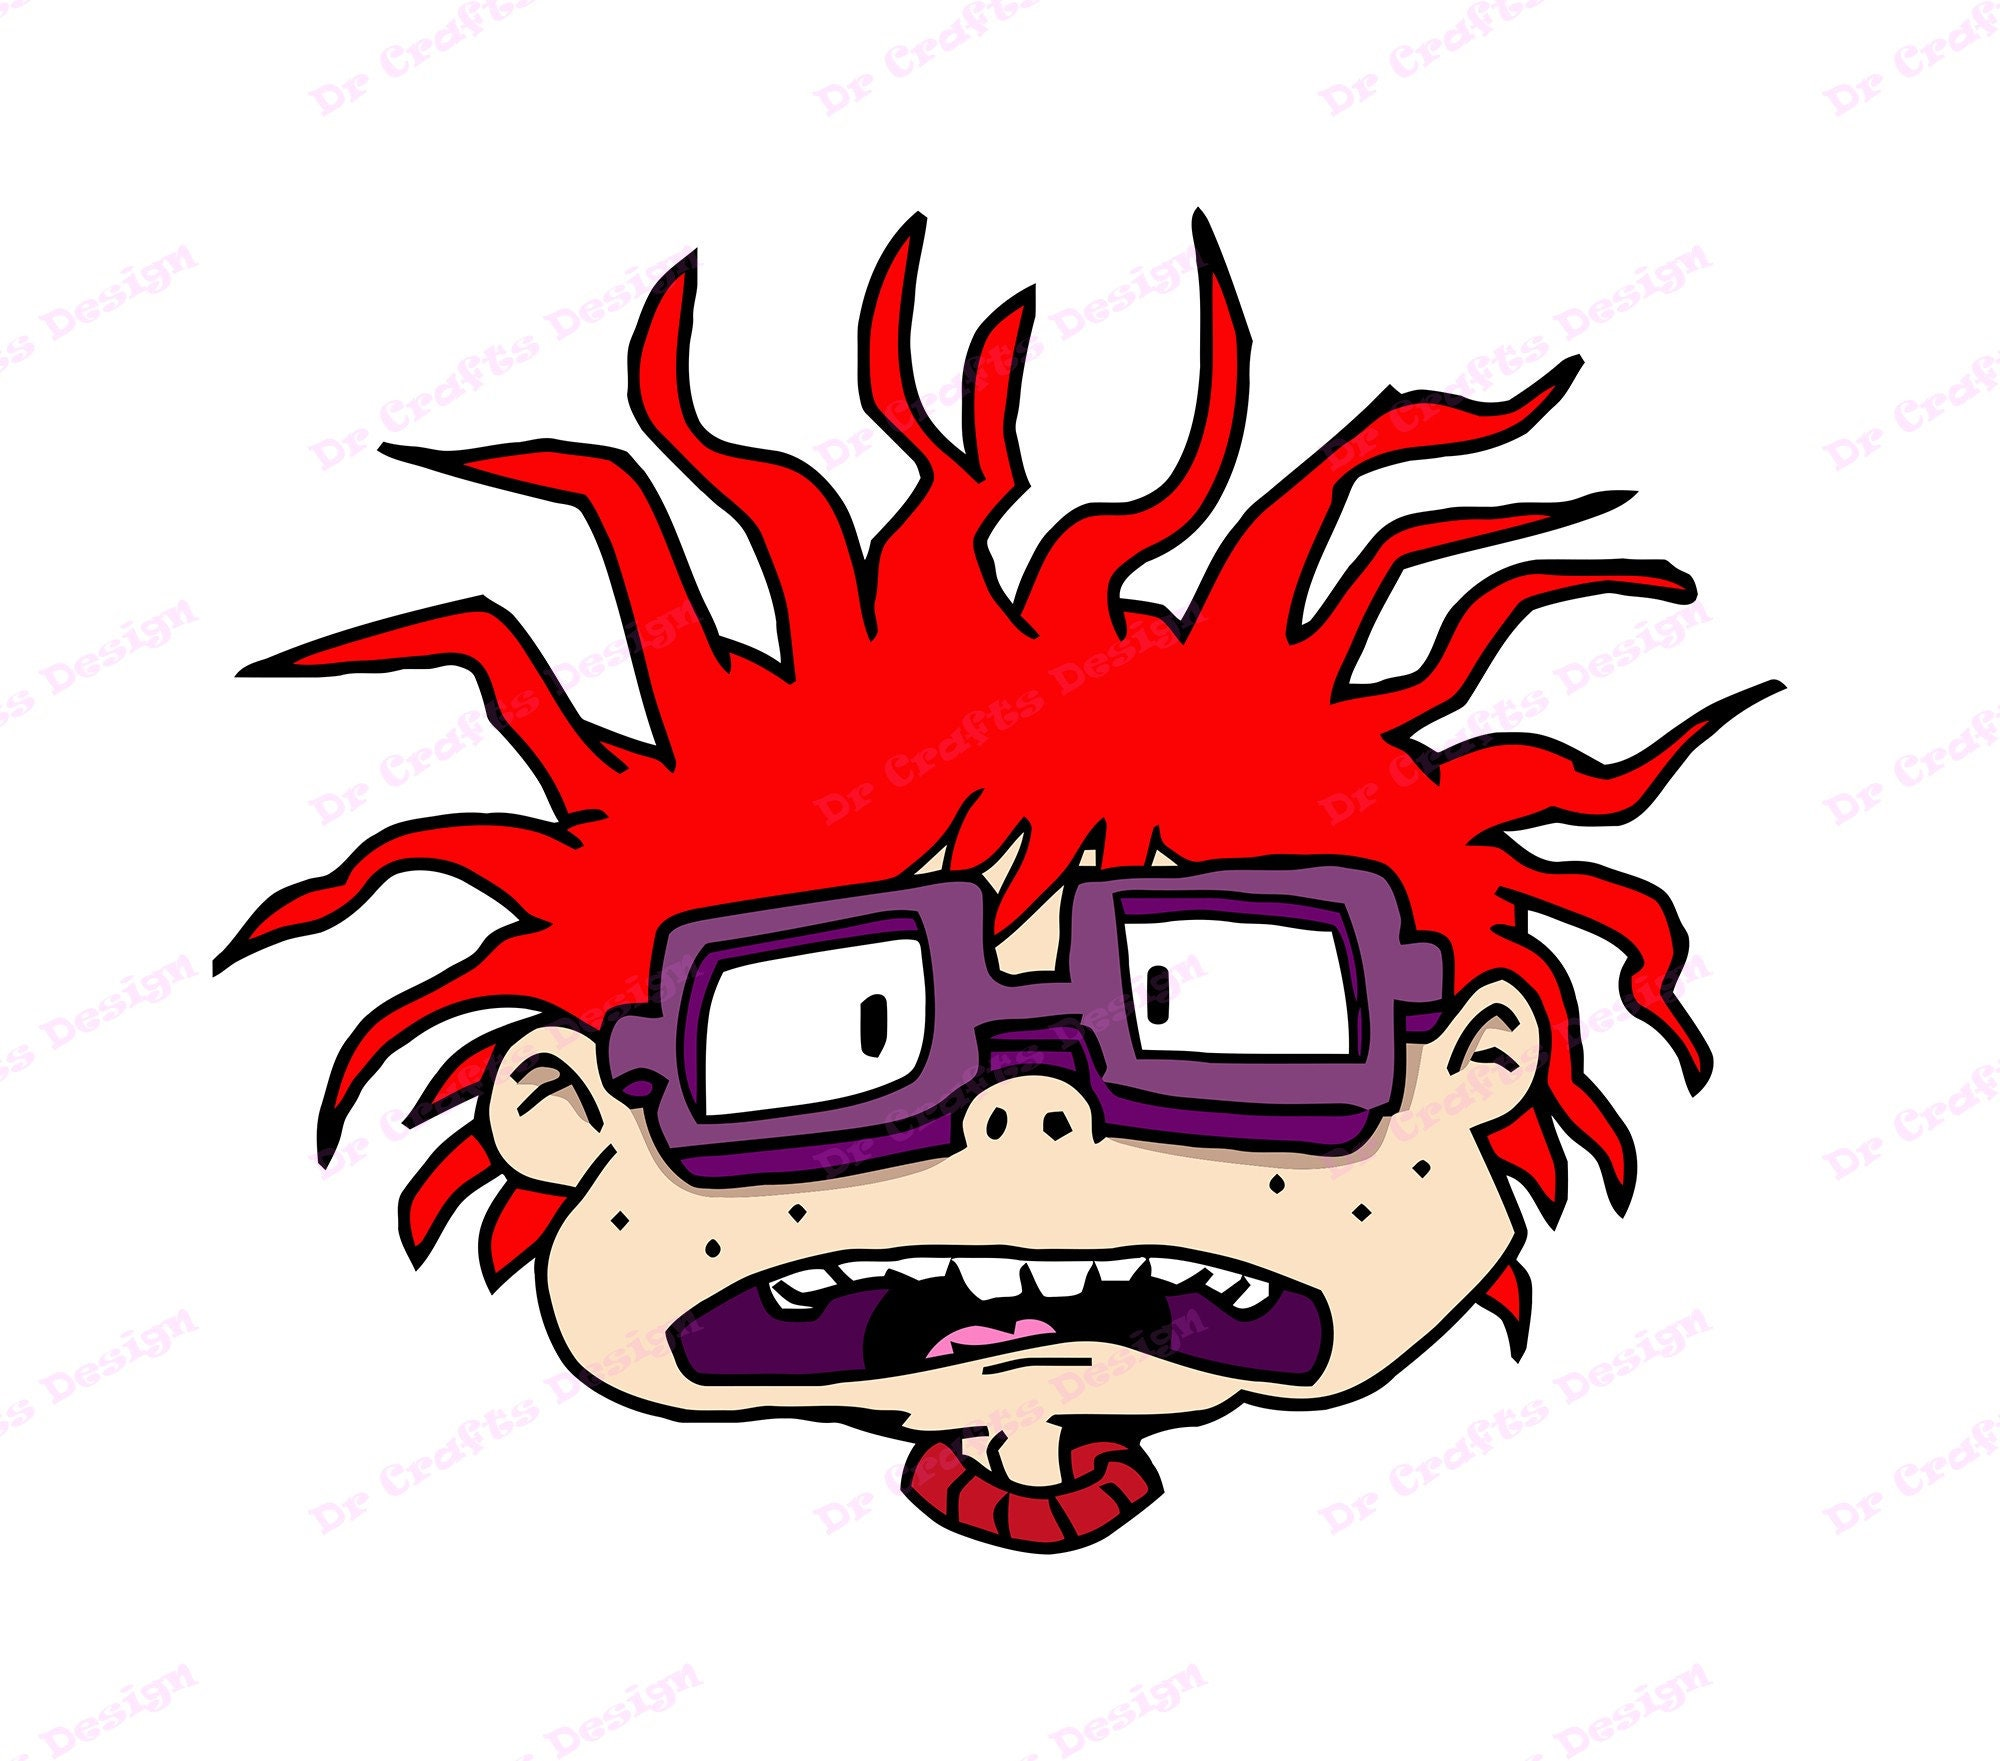 Filled 03 Embroidery Design Instant Download Many Formats and Sizes Embroidery Head Chuckie Finster Rugrats